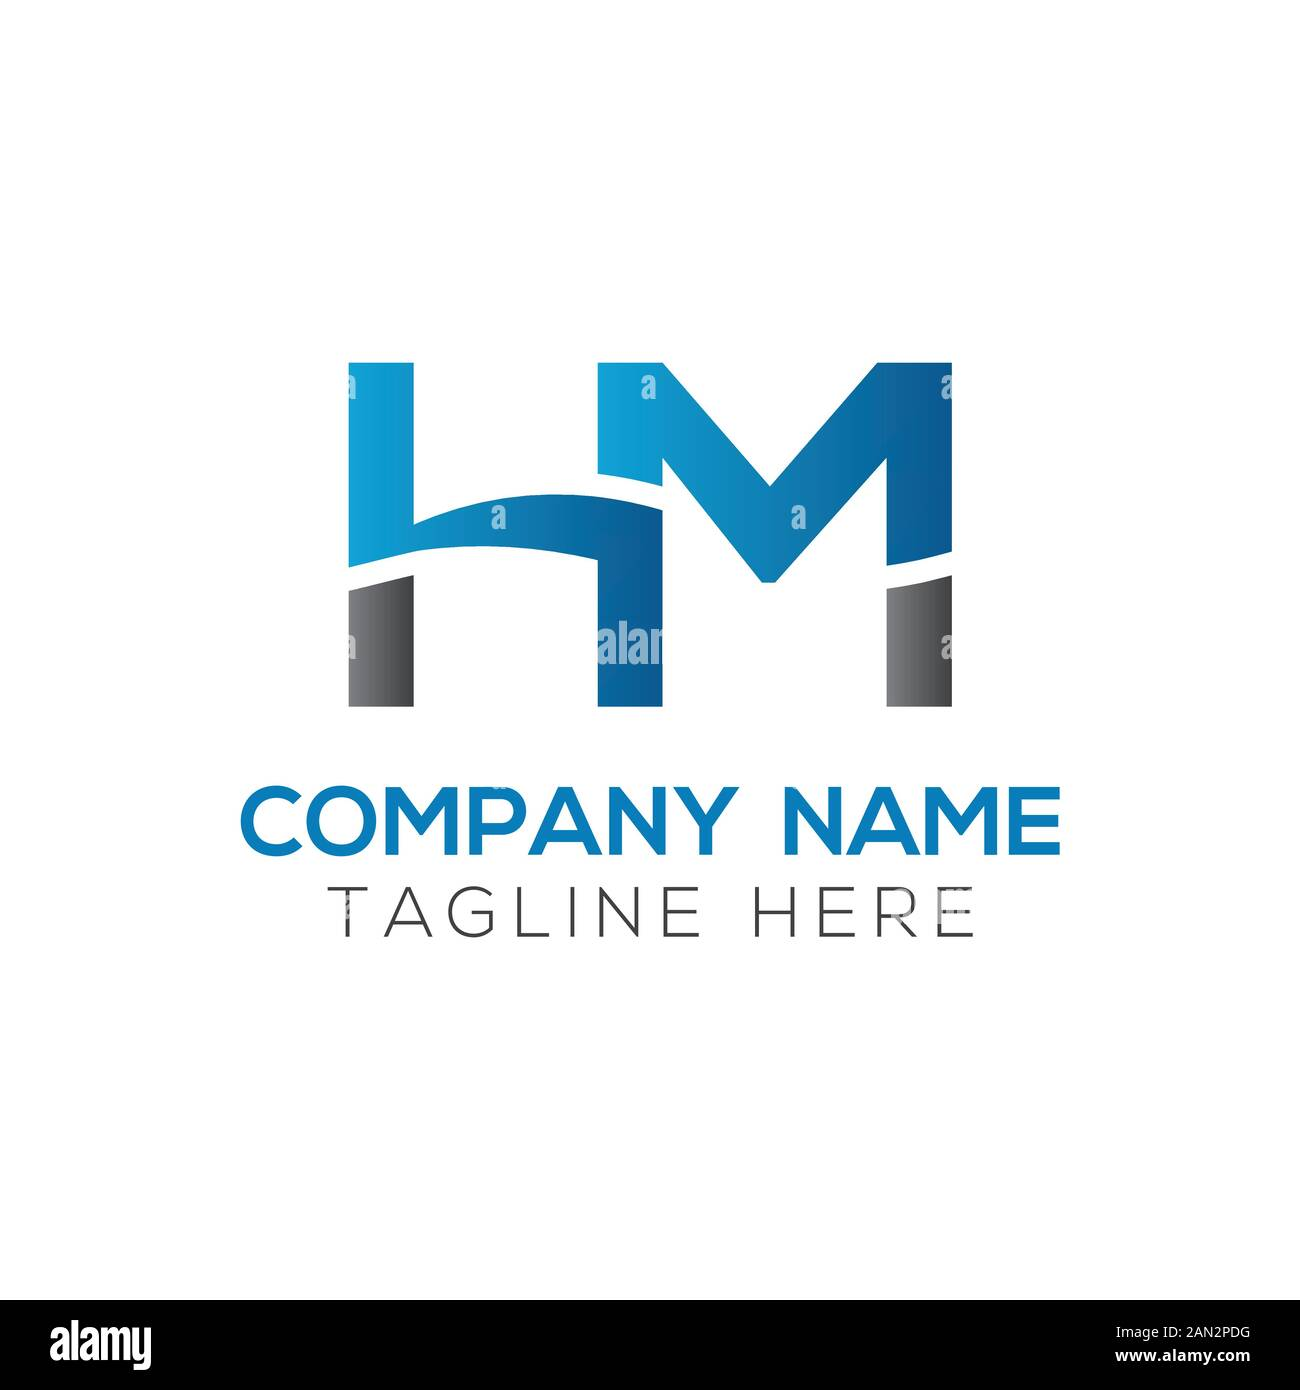 Letter Hm Logo Design Linked Vector Template With Blue And Black Initial Hm Vector Illustration Stock Vector Image Art Alamy